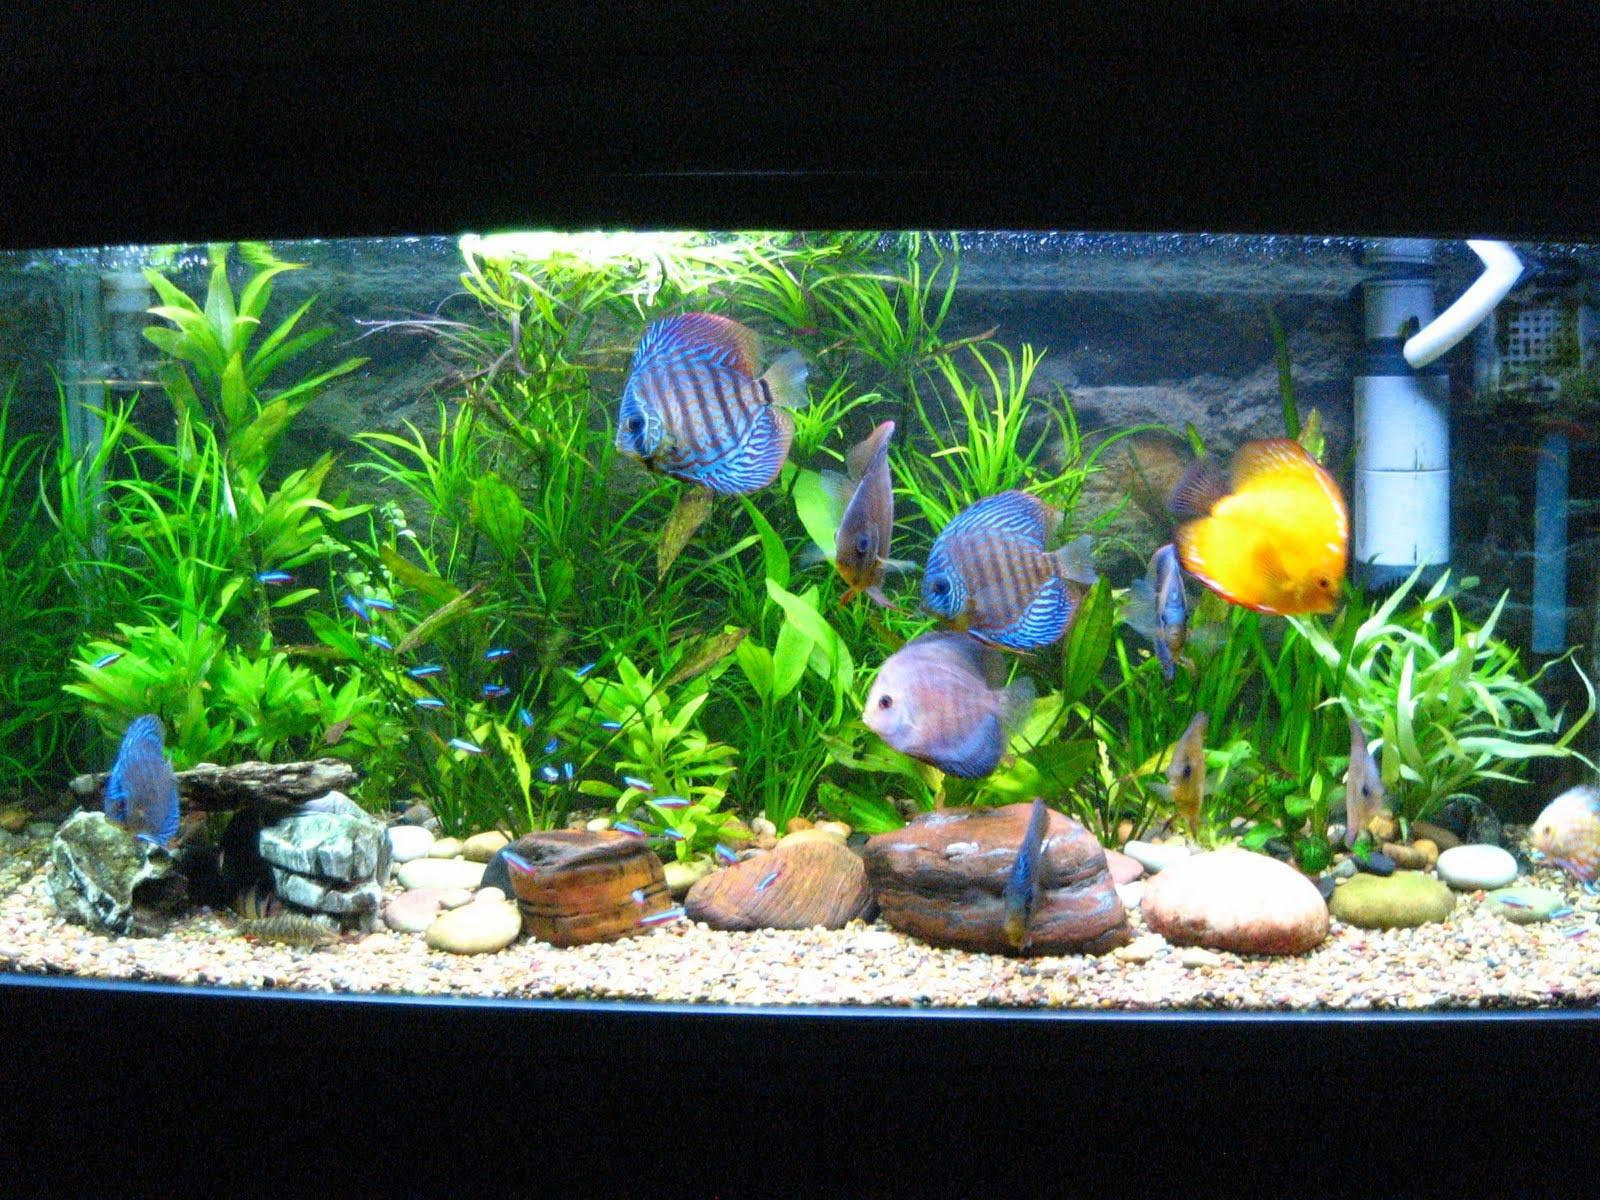 Cool aquarium fish freshwater aquarium design ideas for Coolest freshwater fish